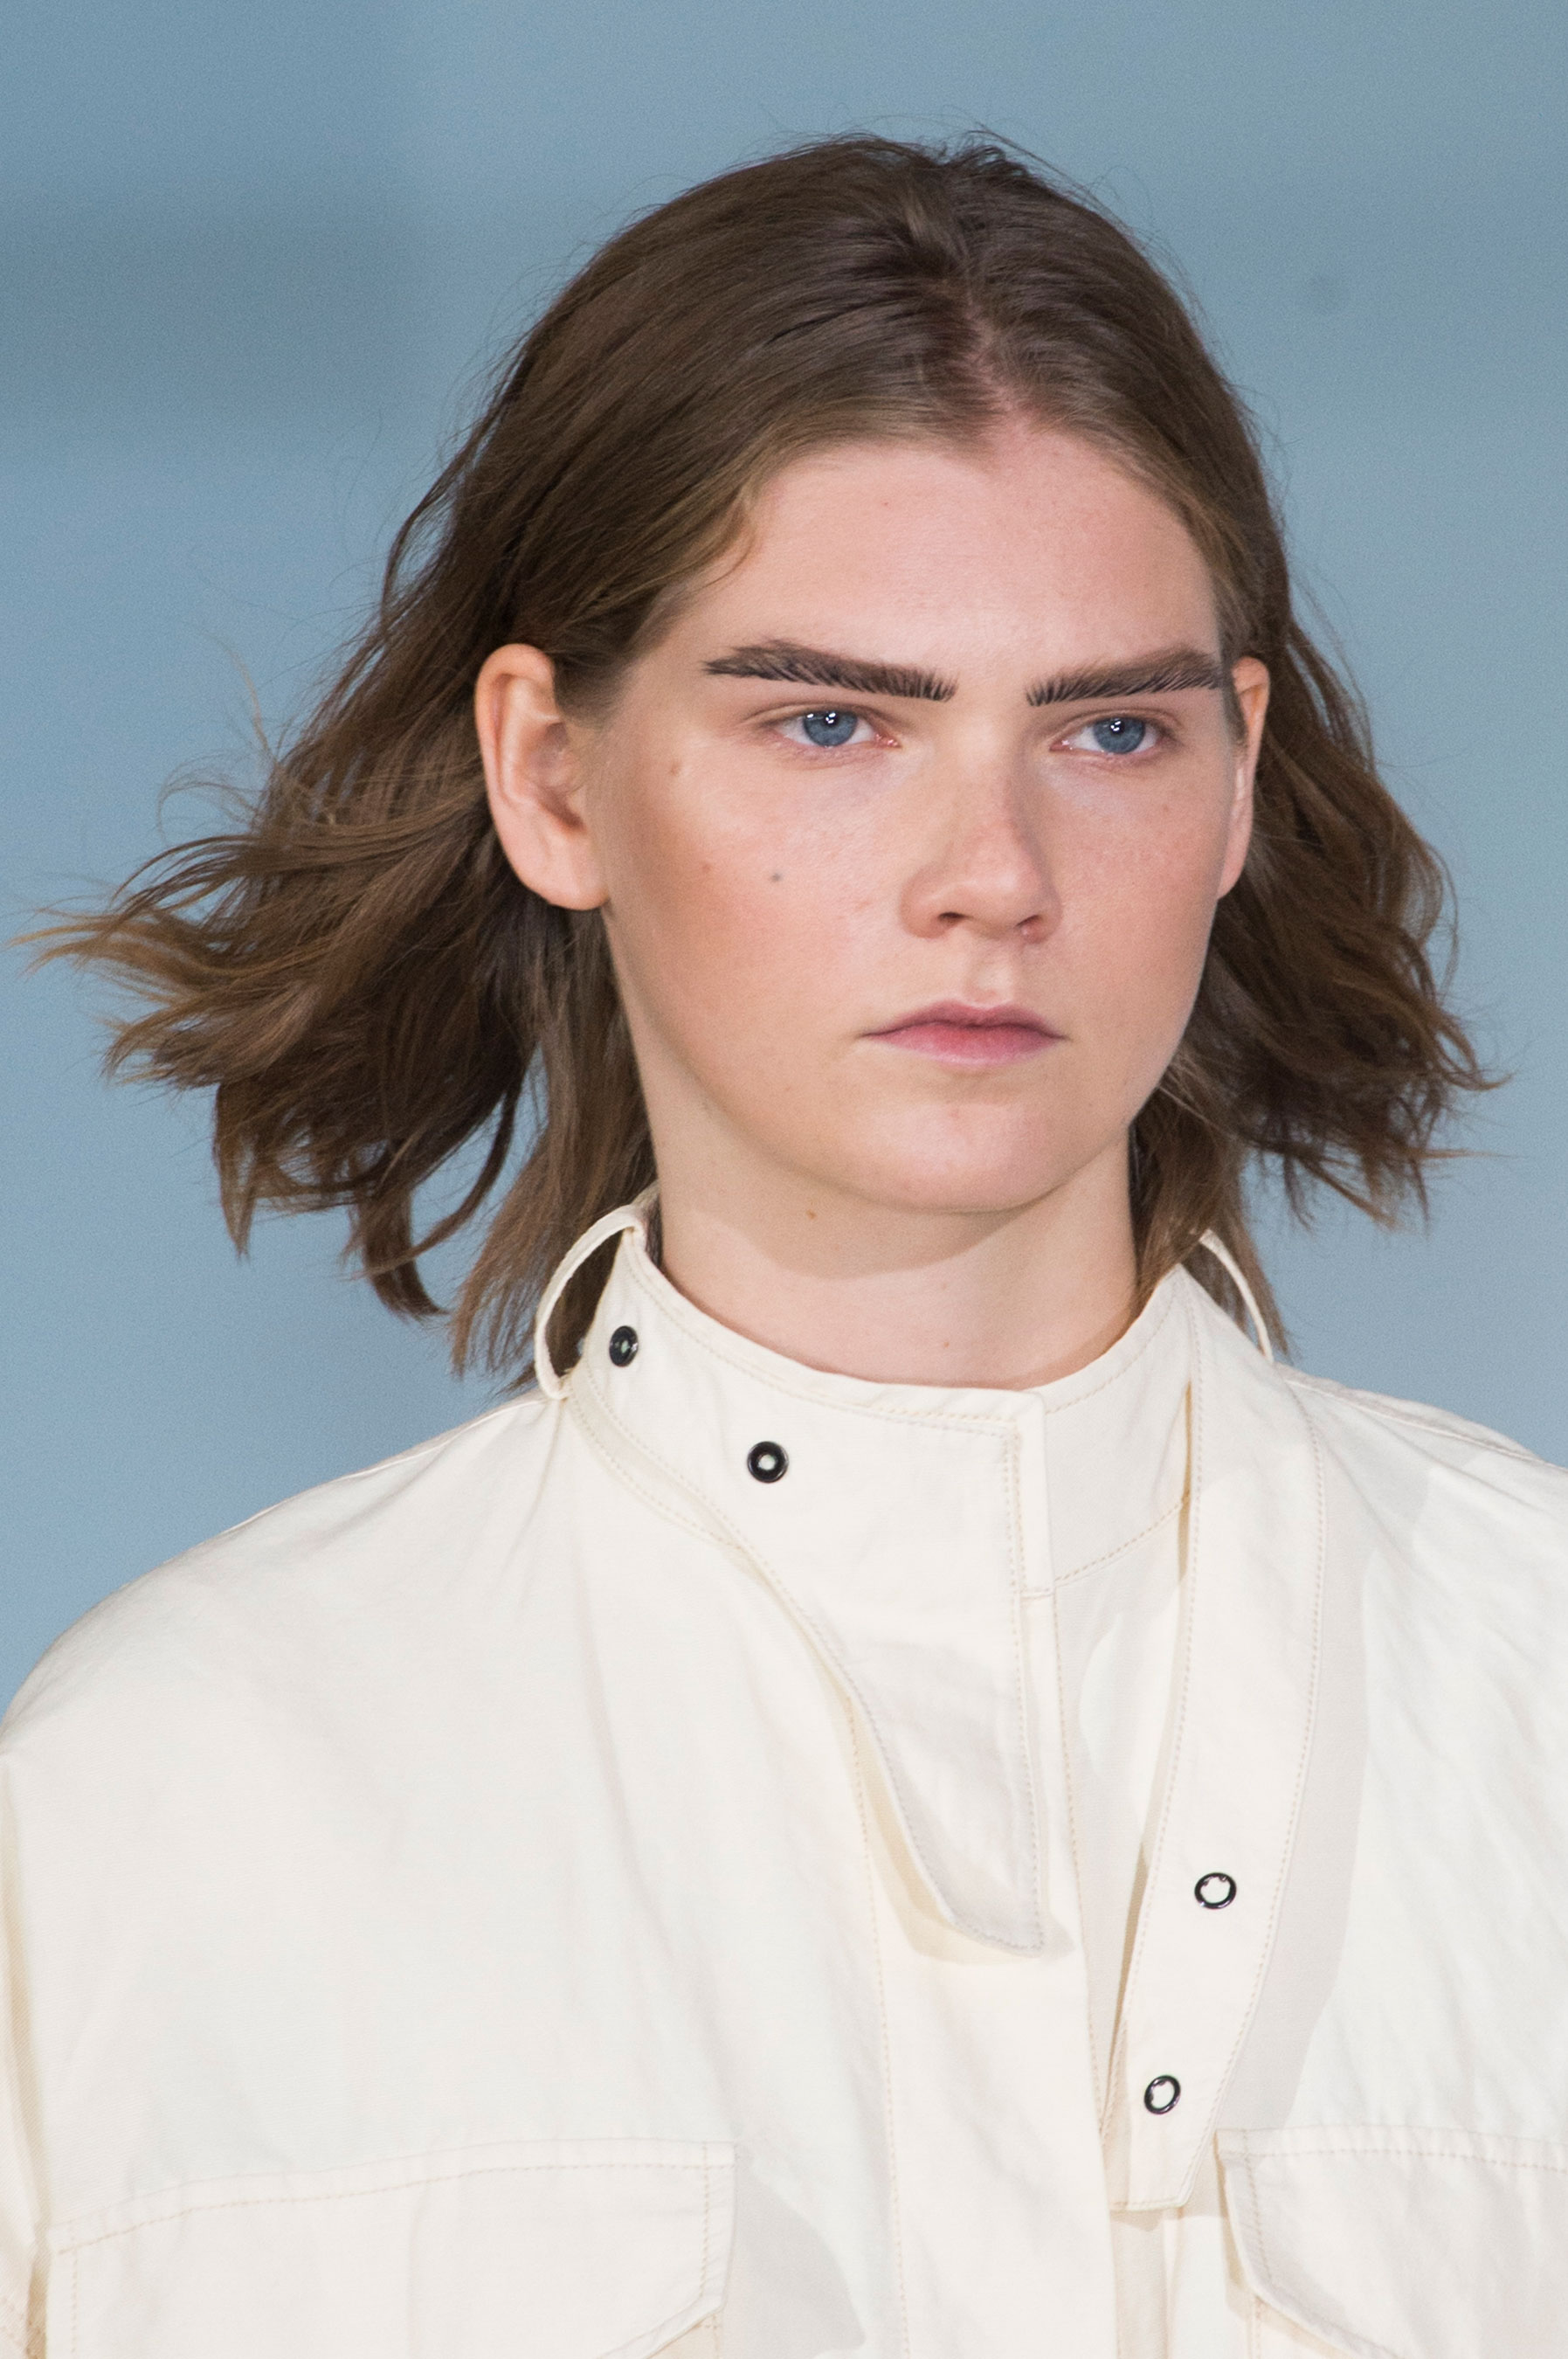 Cedric-charlier-spring-2016-runway-beauty-fashion-show-the-impression-03